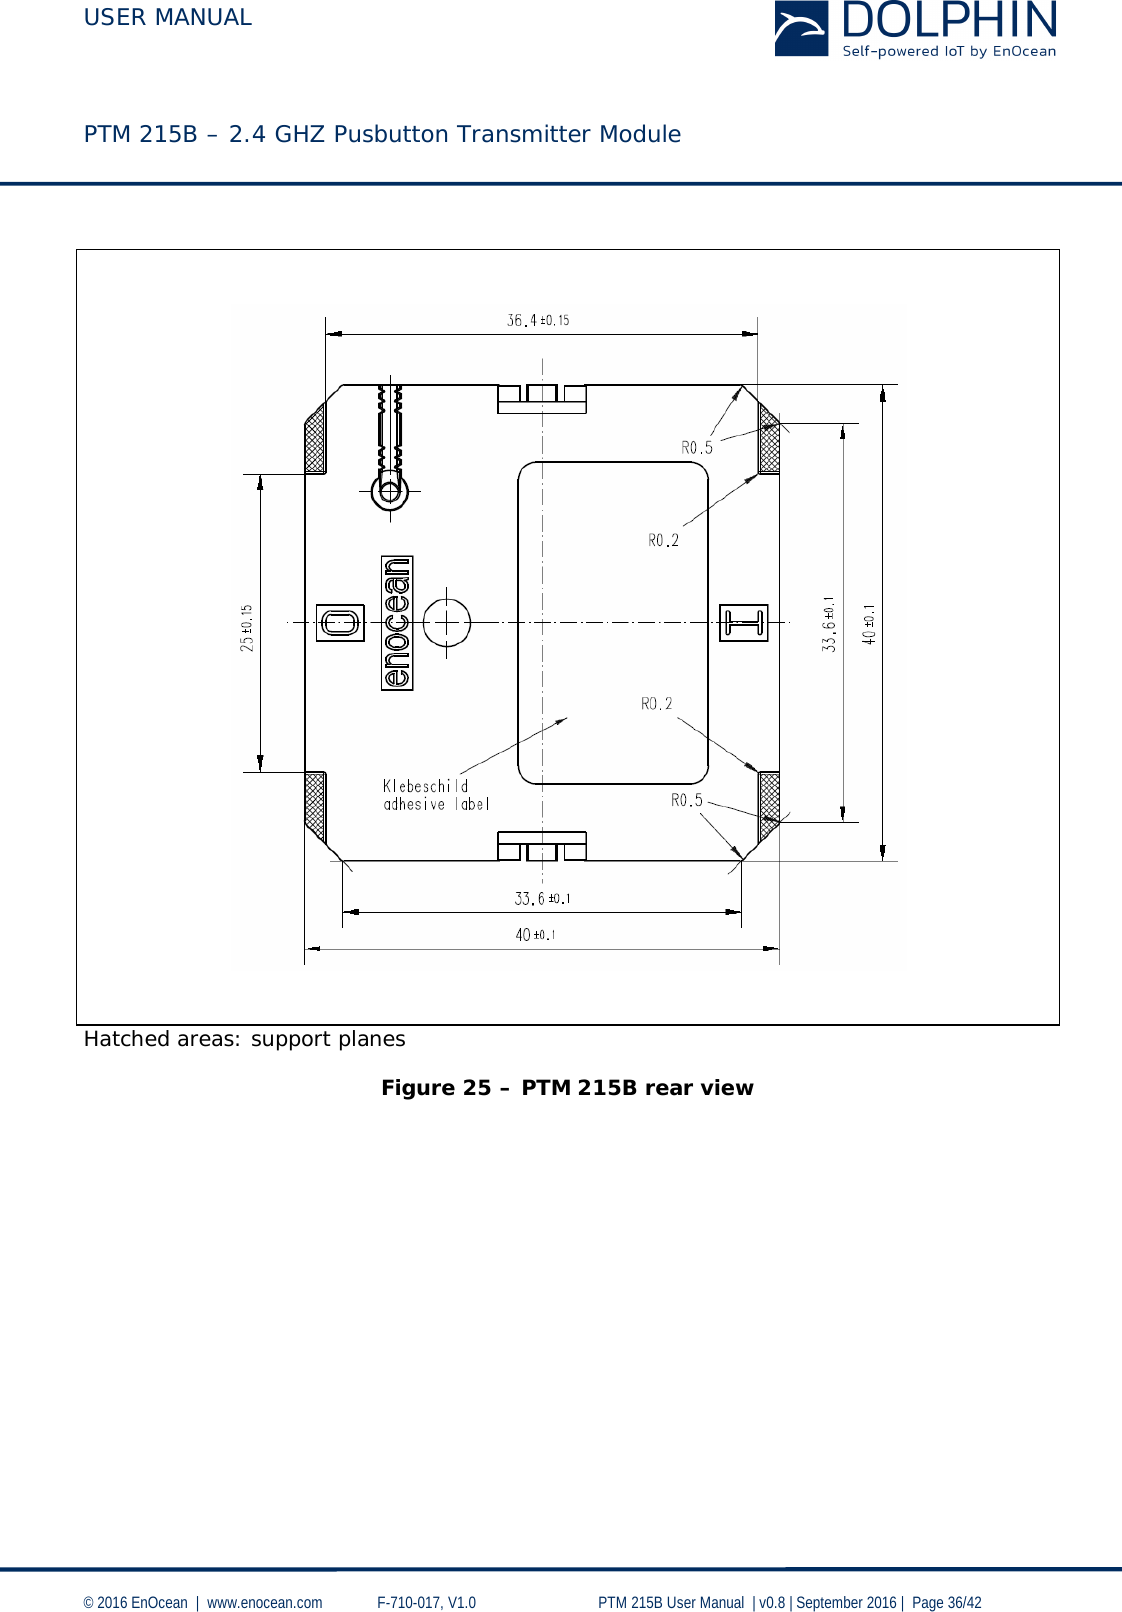 USER MANUAL    PTM 215B – 2.4 GHZ Pusbutton Transmitter Module  © 2016 EnOcean     www.enocean.com   F-710-017, V1.0        PTM 215B User Manual    v0.8   September 2016    Page 36/42      Hatched areas: support planes  Figure 25 – PTM 215B rear view